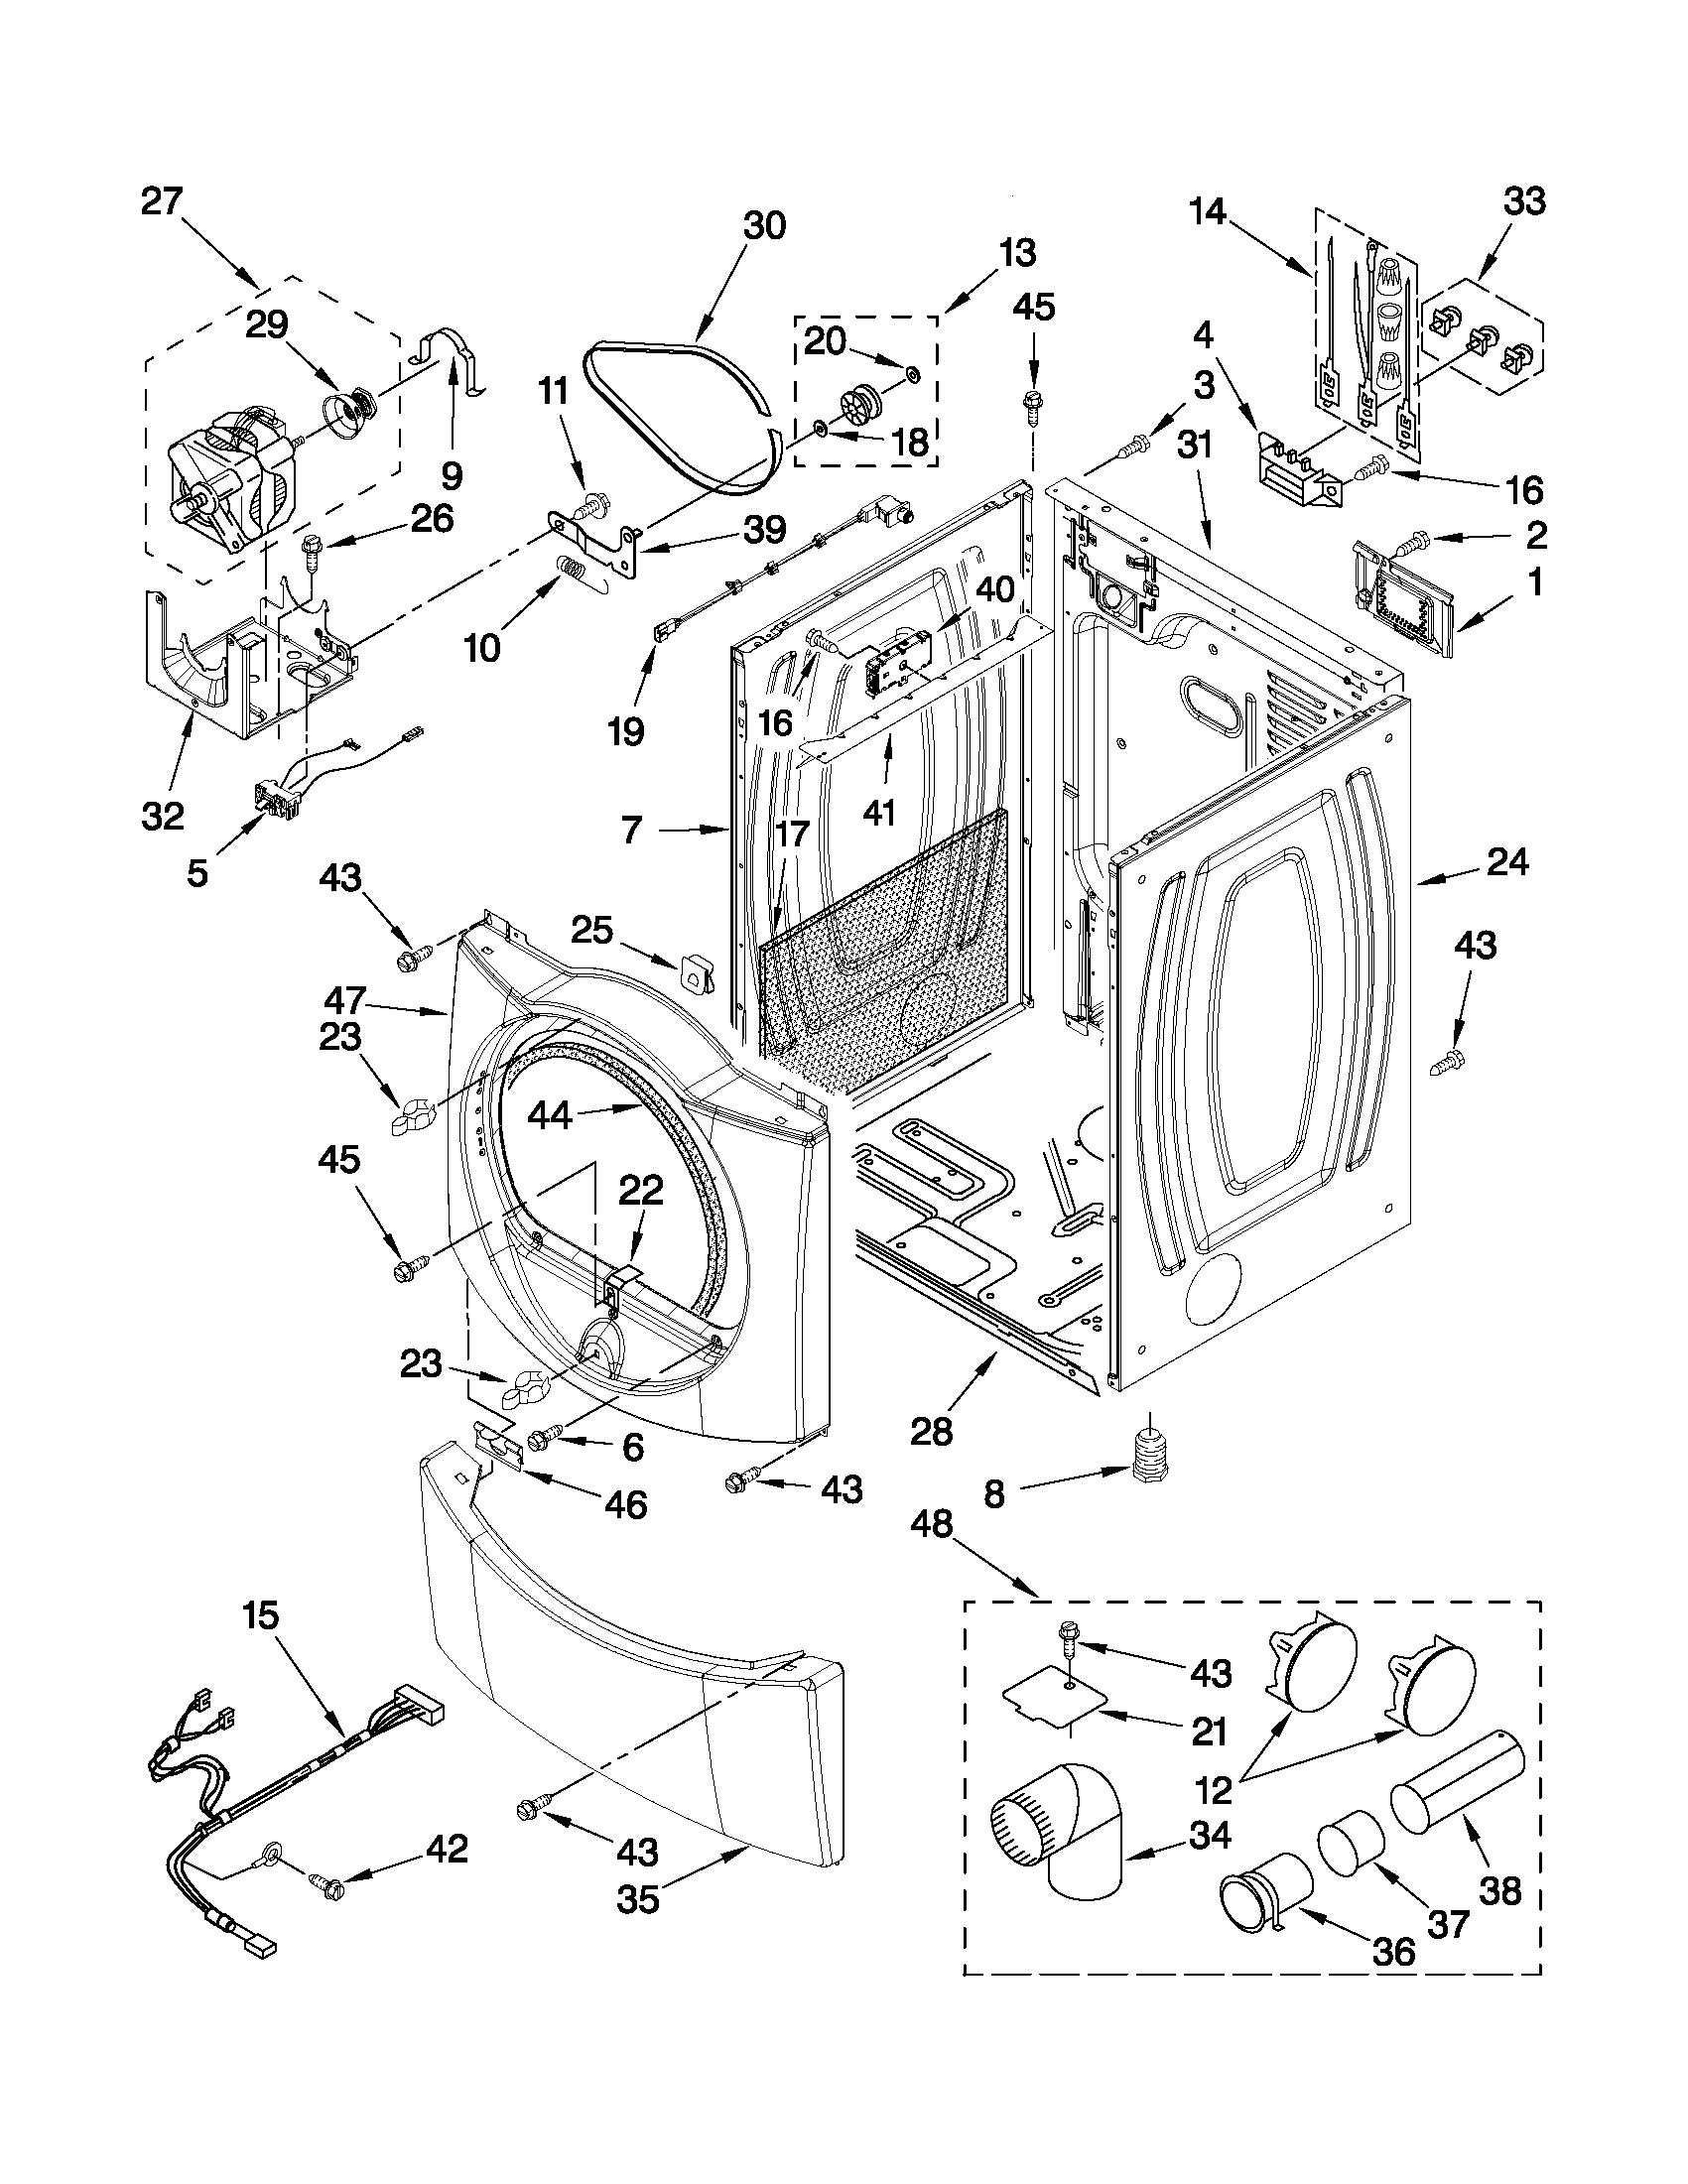 CABINET PARTS Diagram & Parts List for Model wed9750ww0